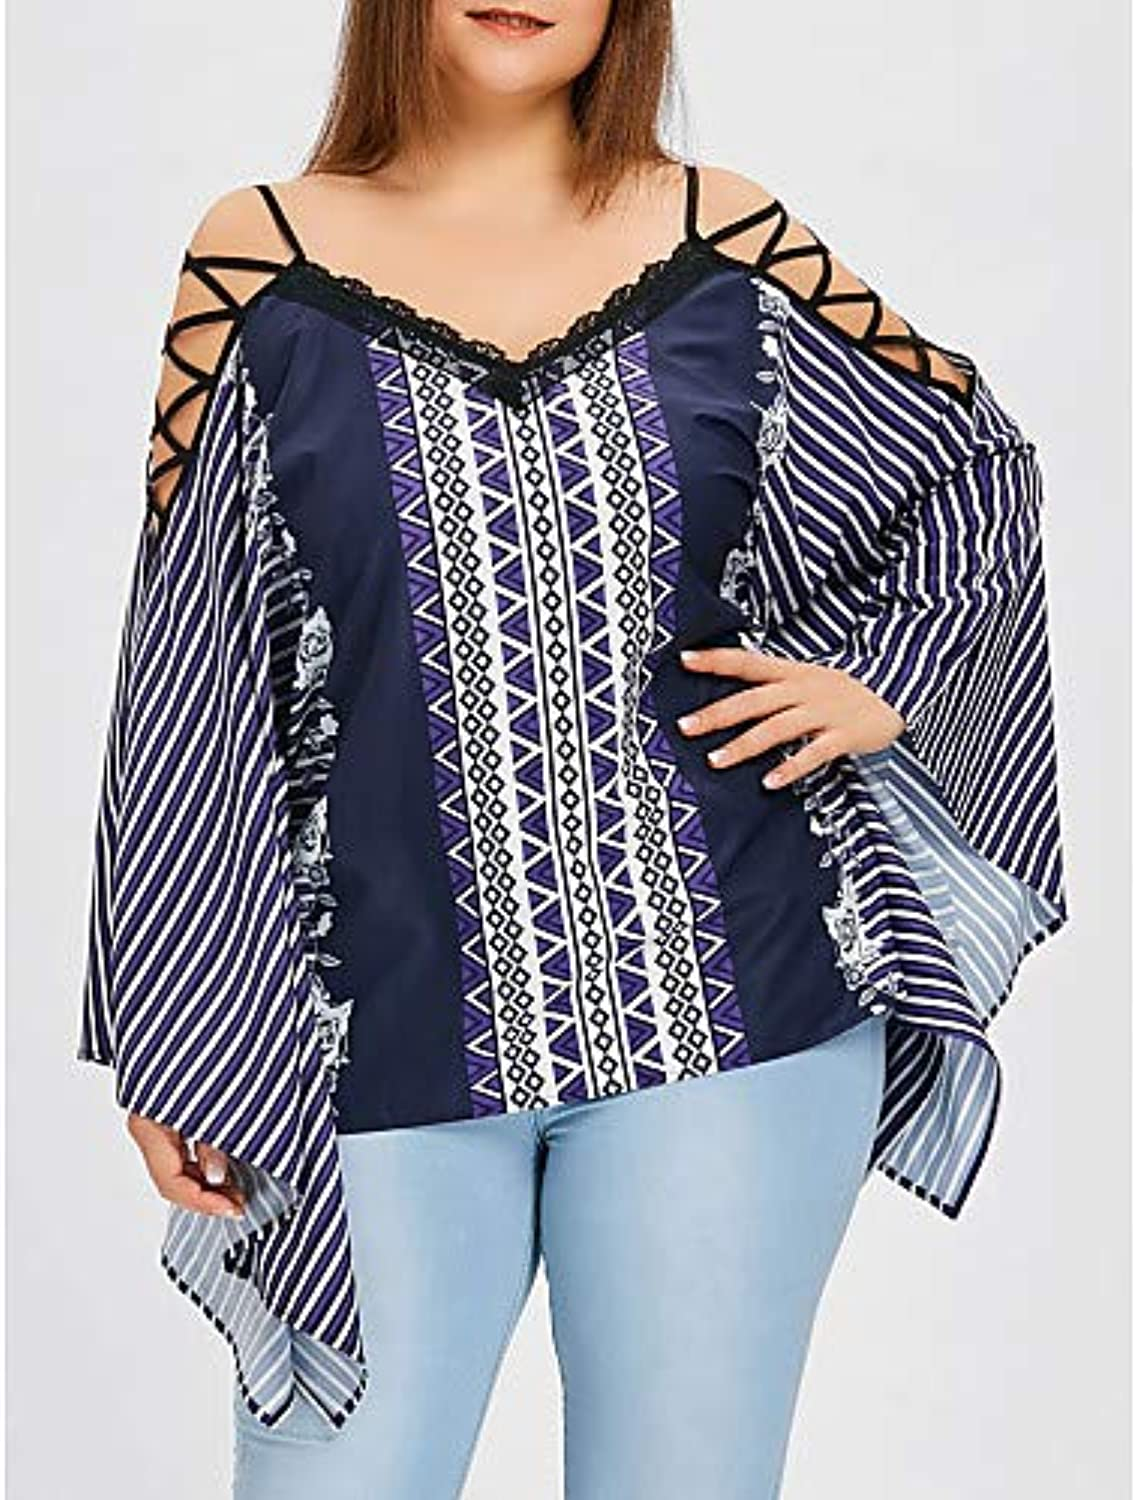 Women's Cotton BlouseSolid colord Geometric V Neck